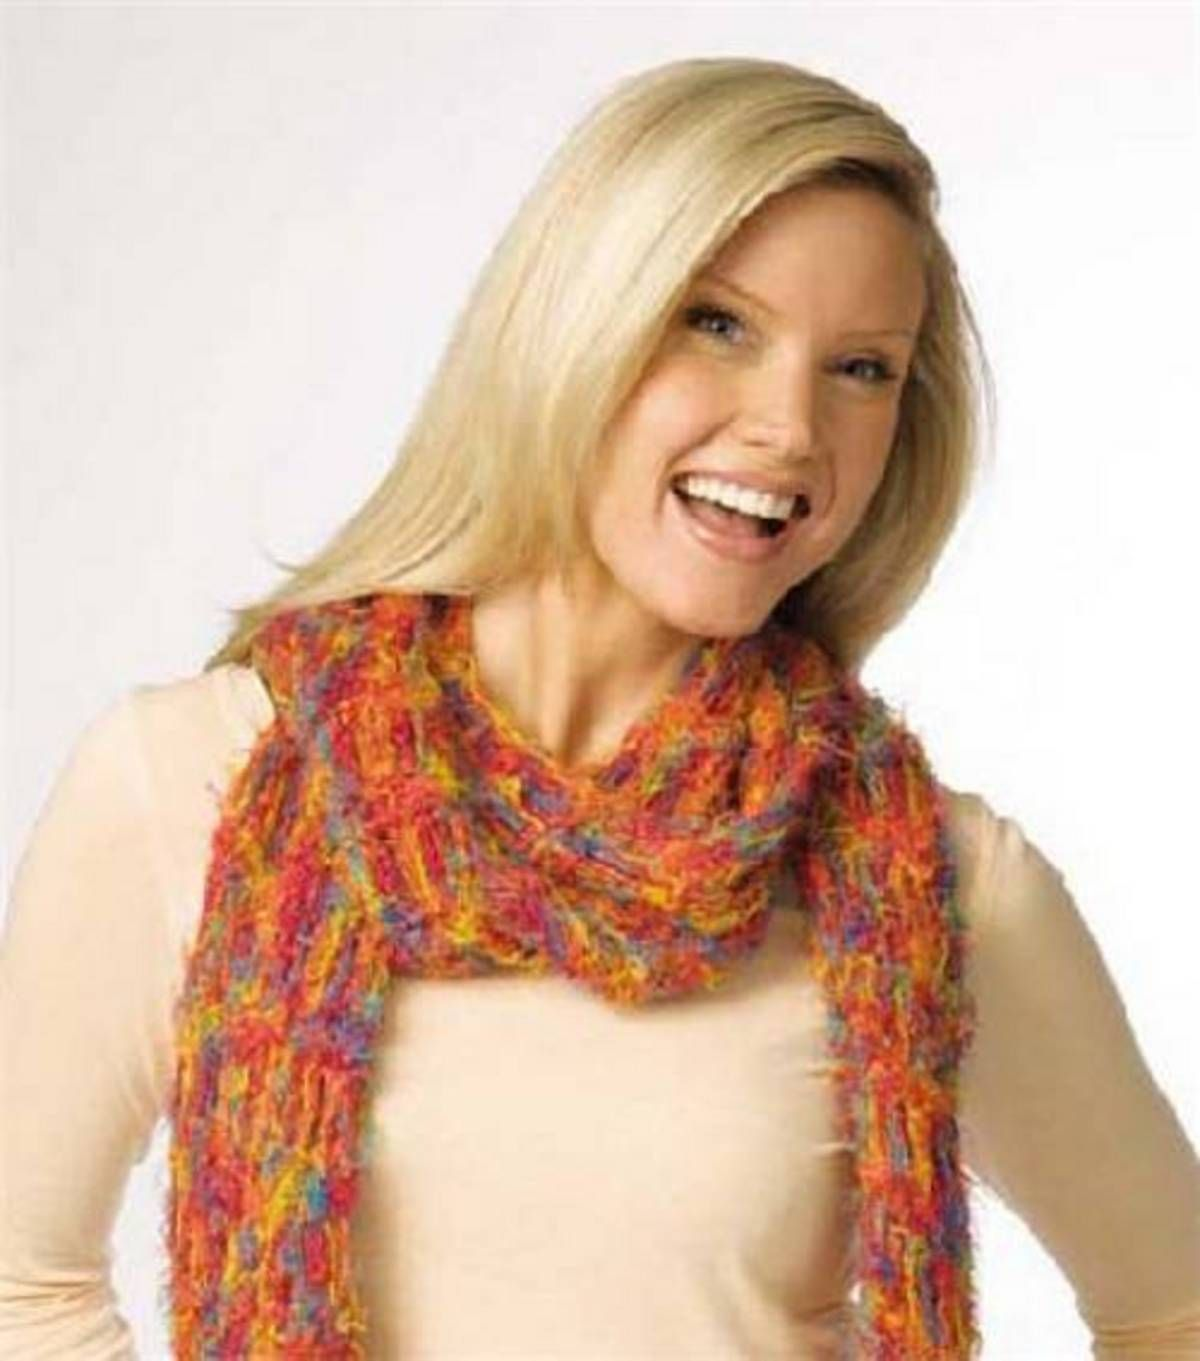 Knitted Open Weave Scarf at Joann.com